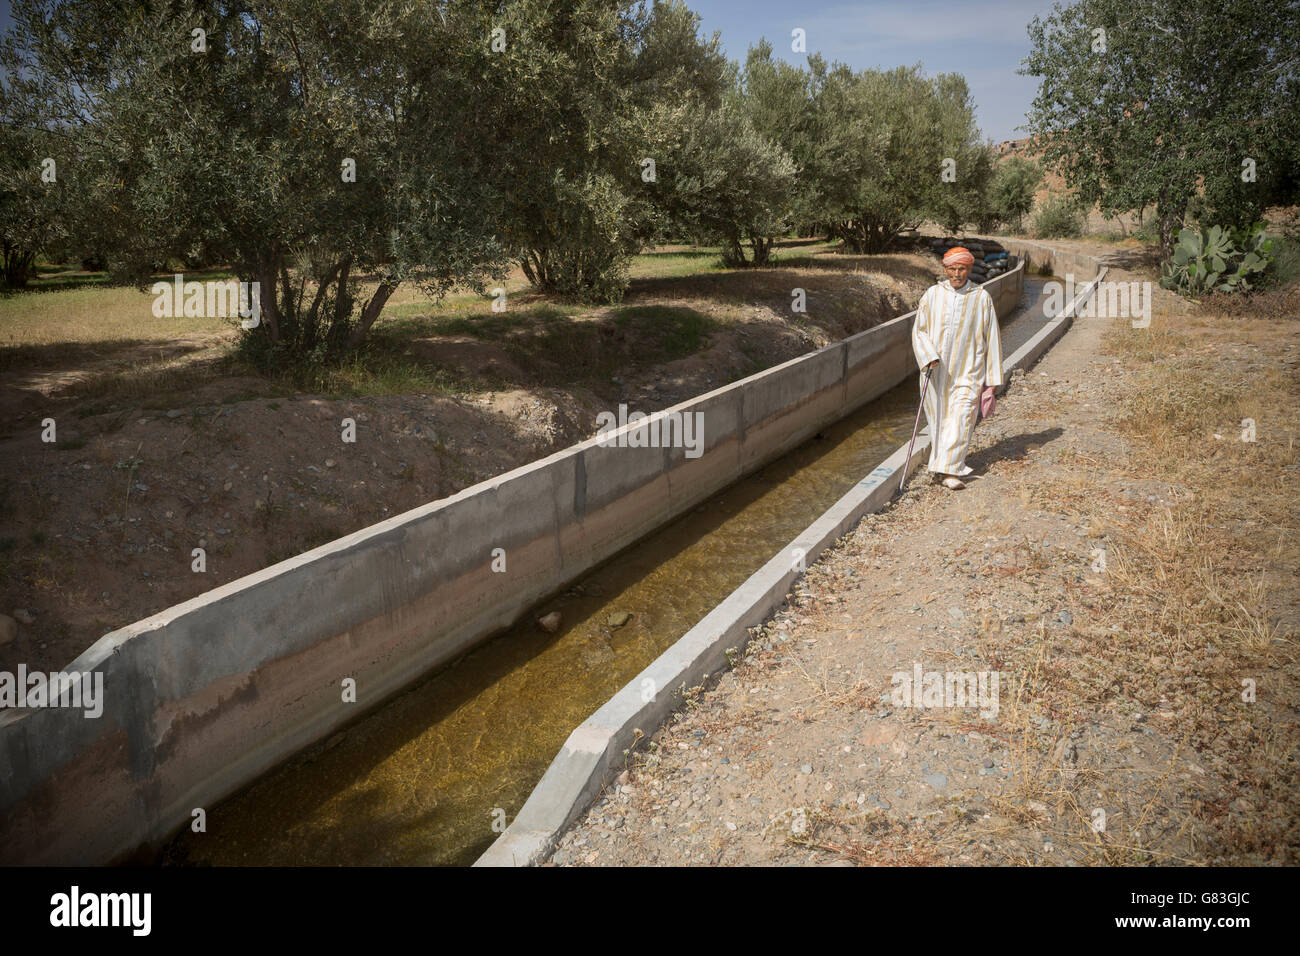 The irrigation canal in Chichaoua Prov. has brought increased productivity to farmers in this dry area of Morocco. - Stock Image